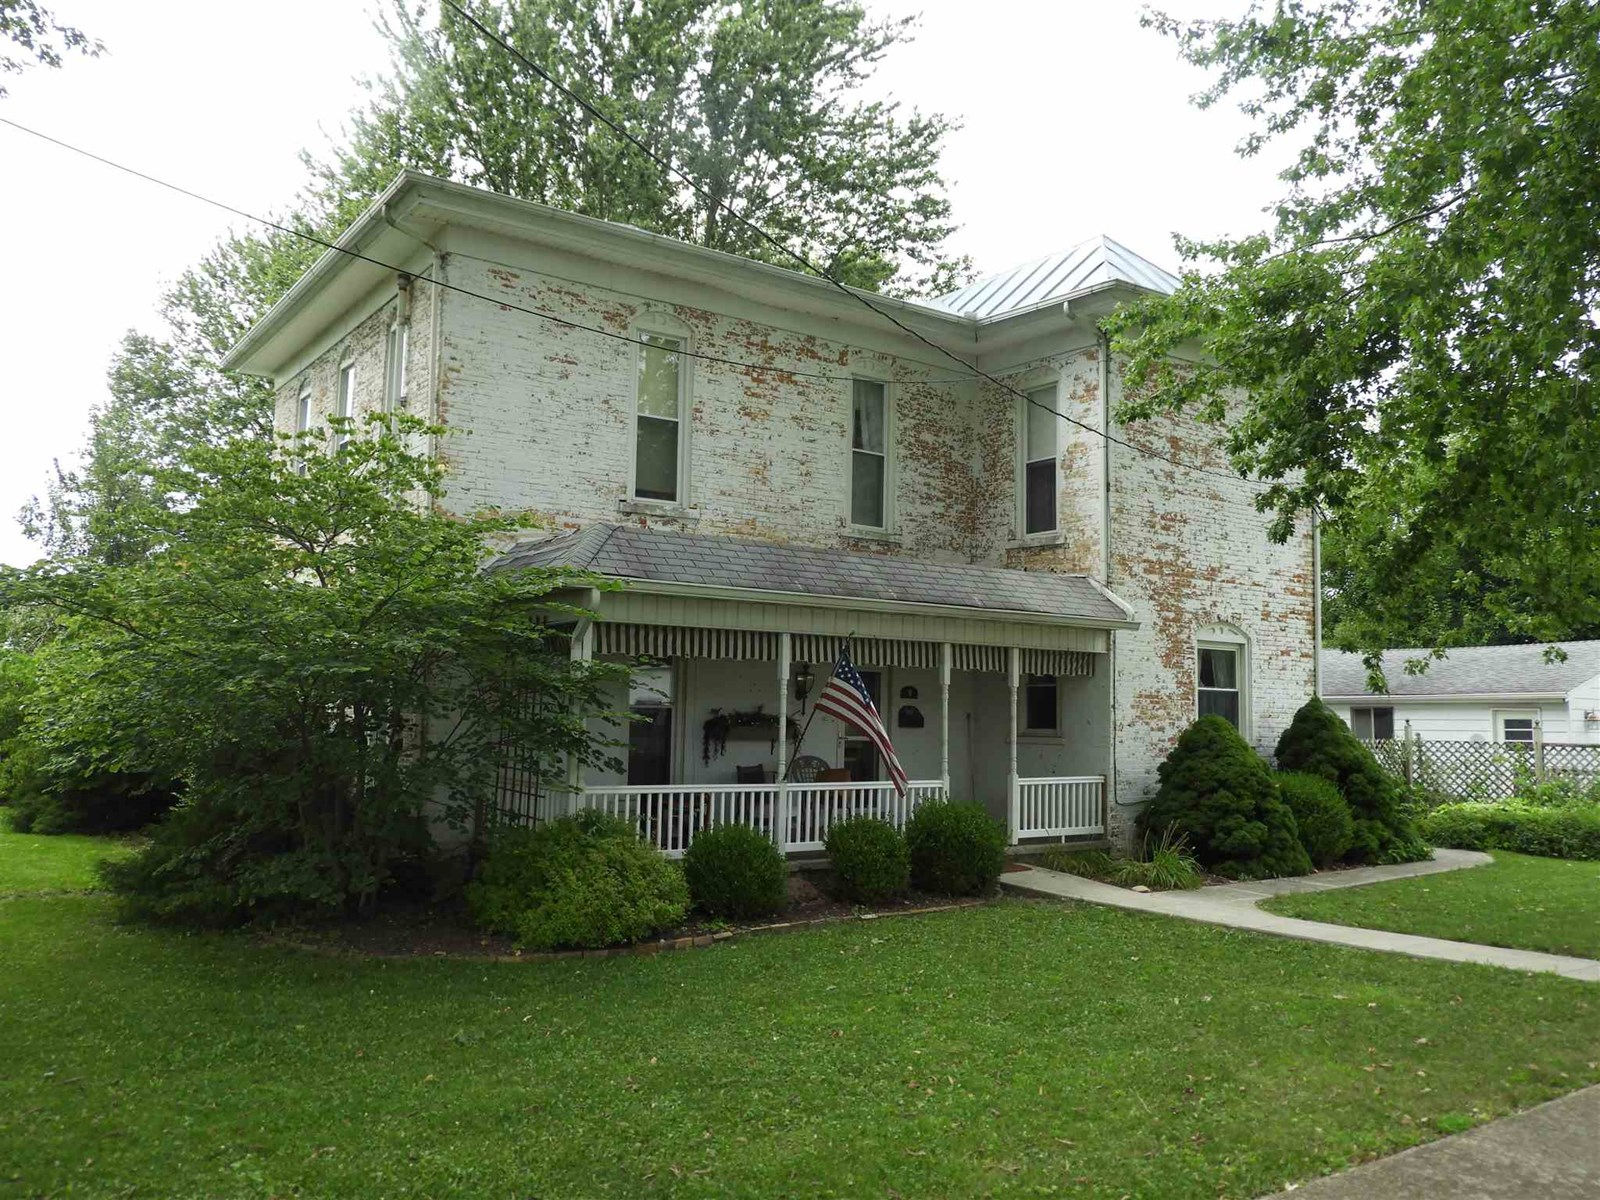 Home for Sale Ridgeville, IN